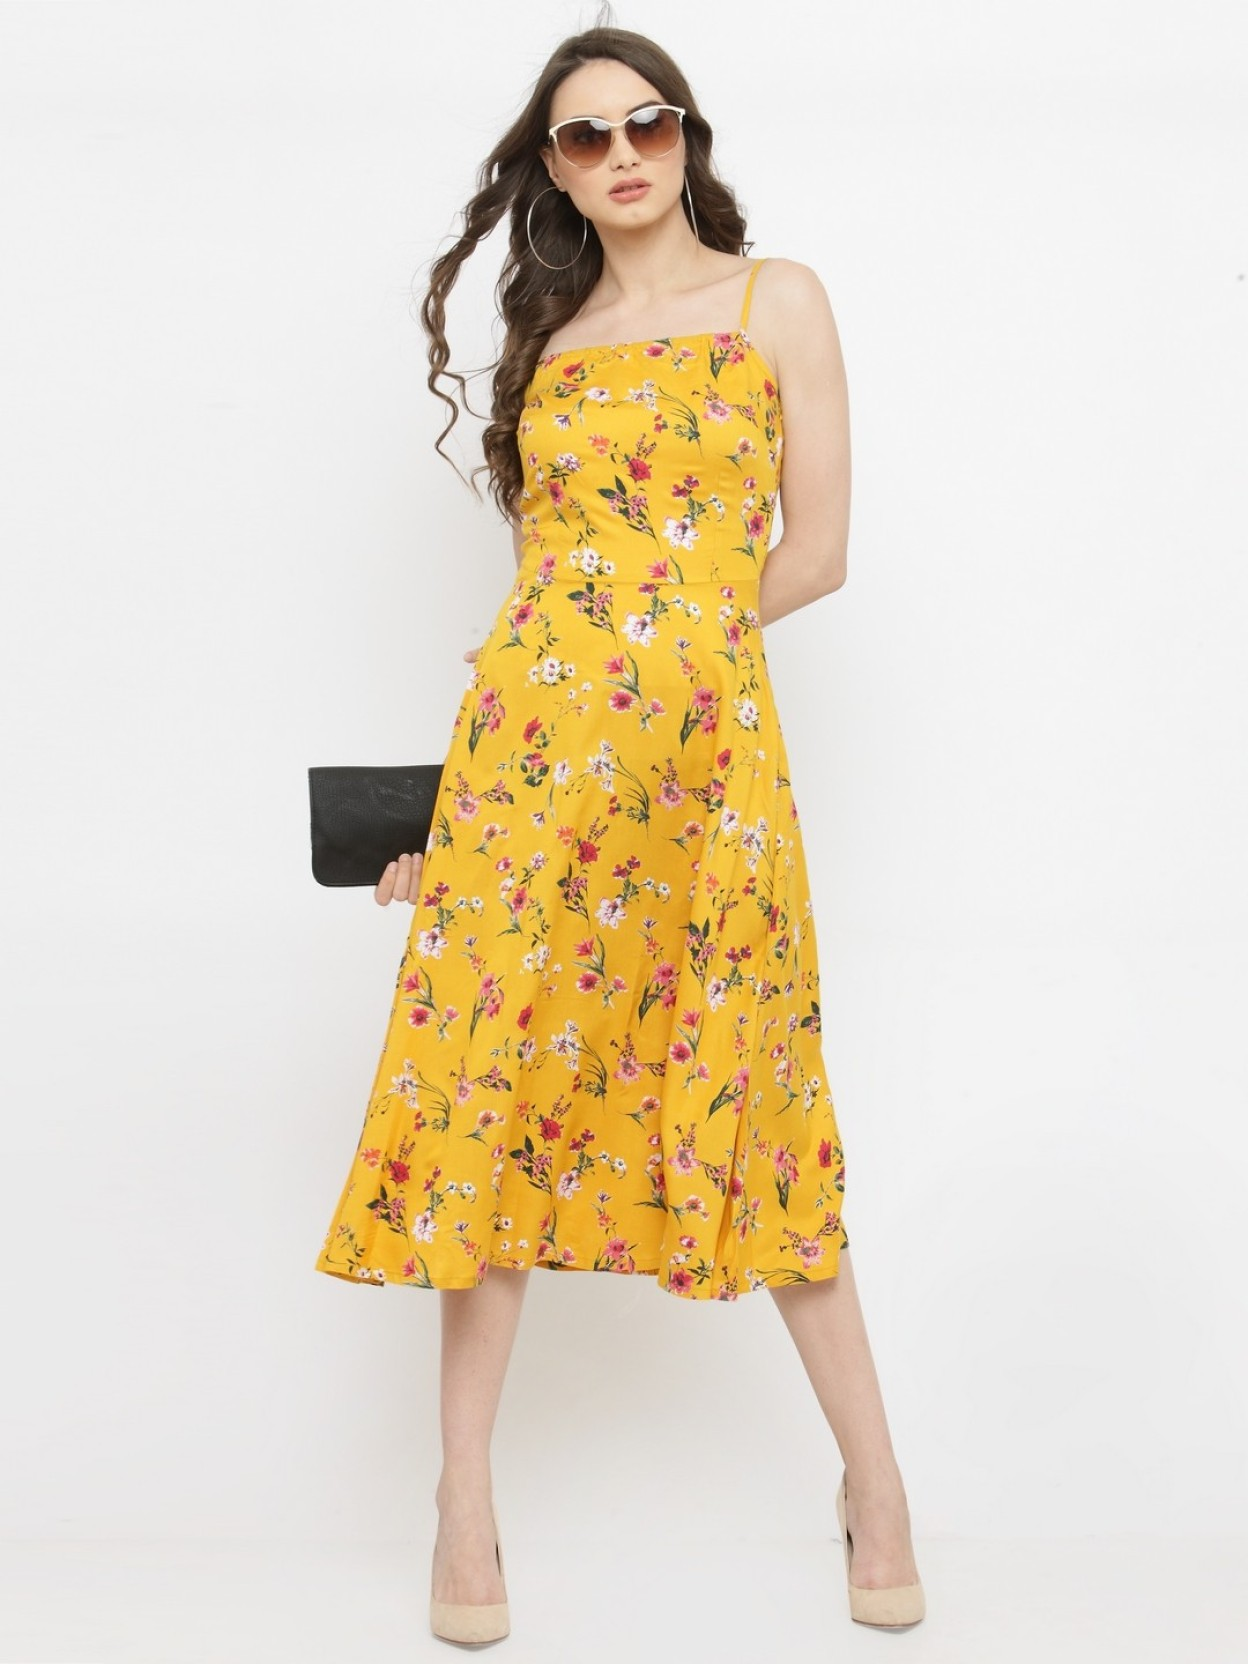 a033173eca7e Offer Zone. Pluss Women Fit and Flare Yellow Dress. ADD TO CART. BUY NOW